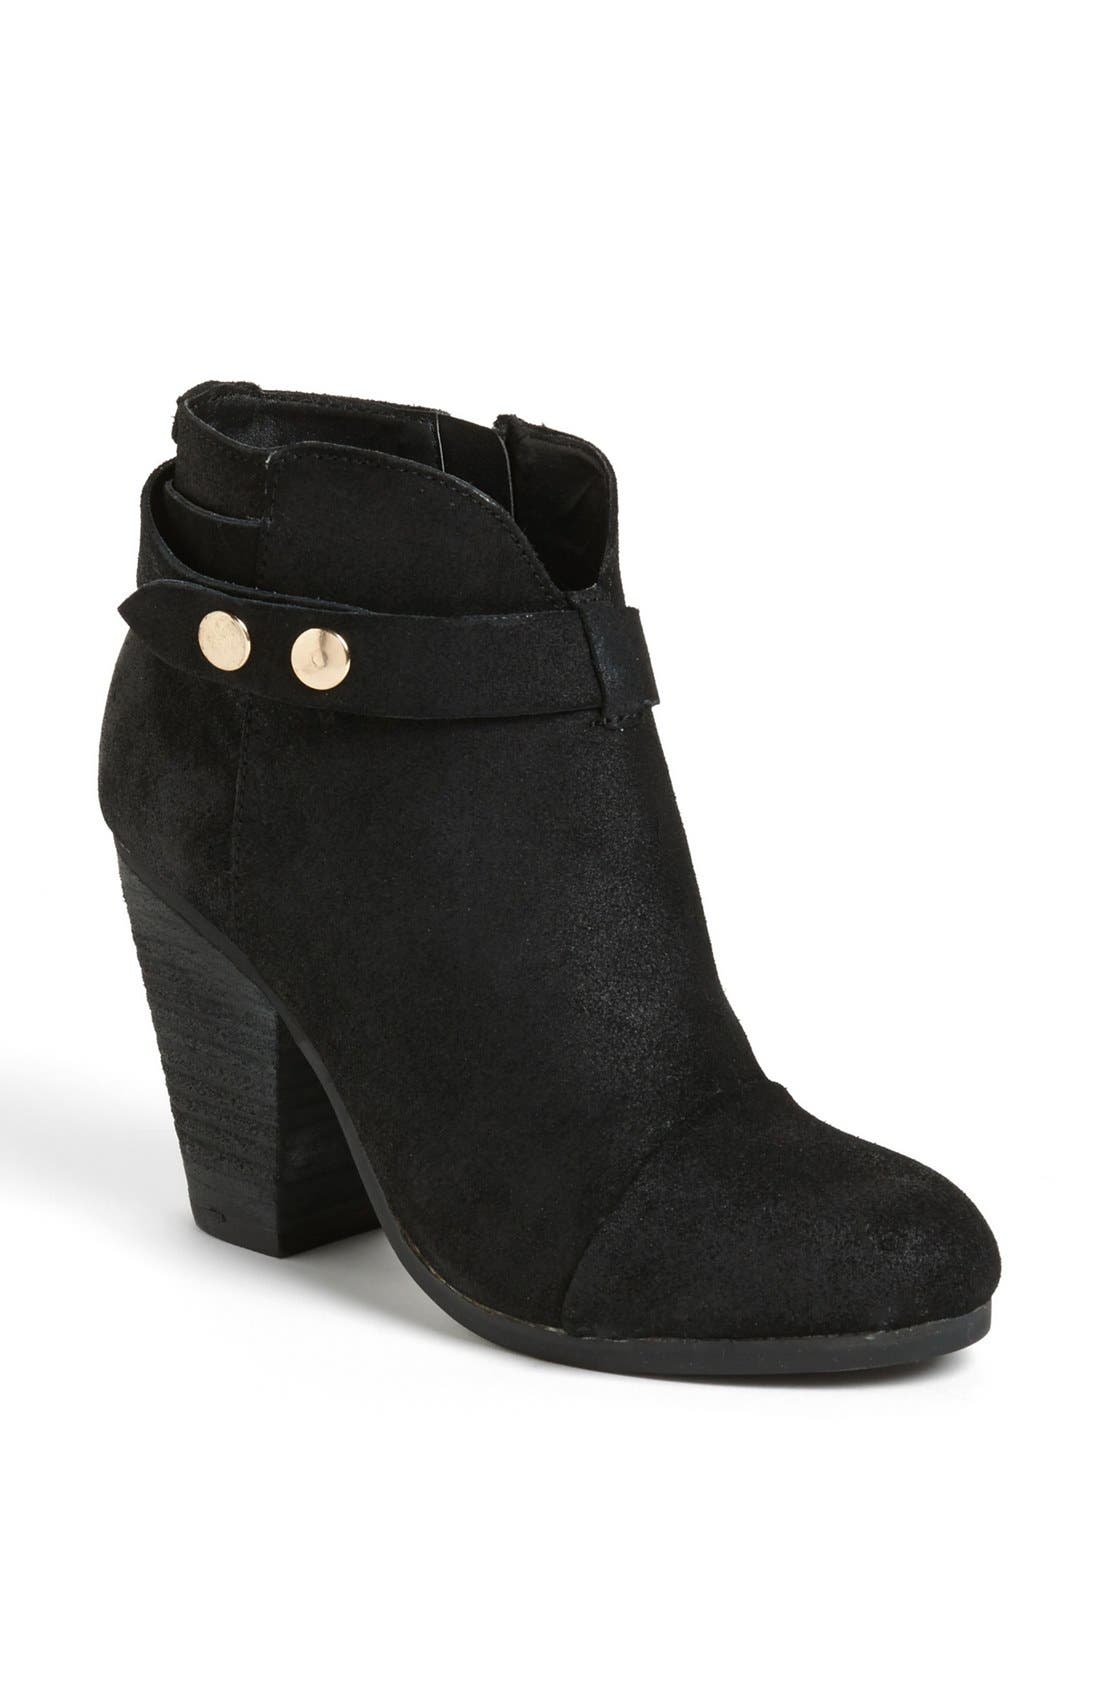 Alternate Image 1 Selected - Steve Madden 'Arieel' Boot